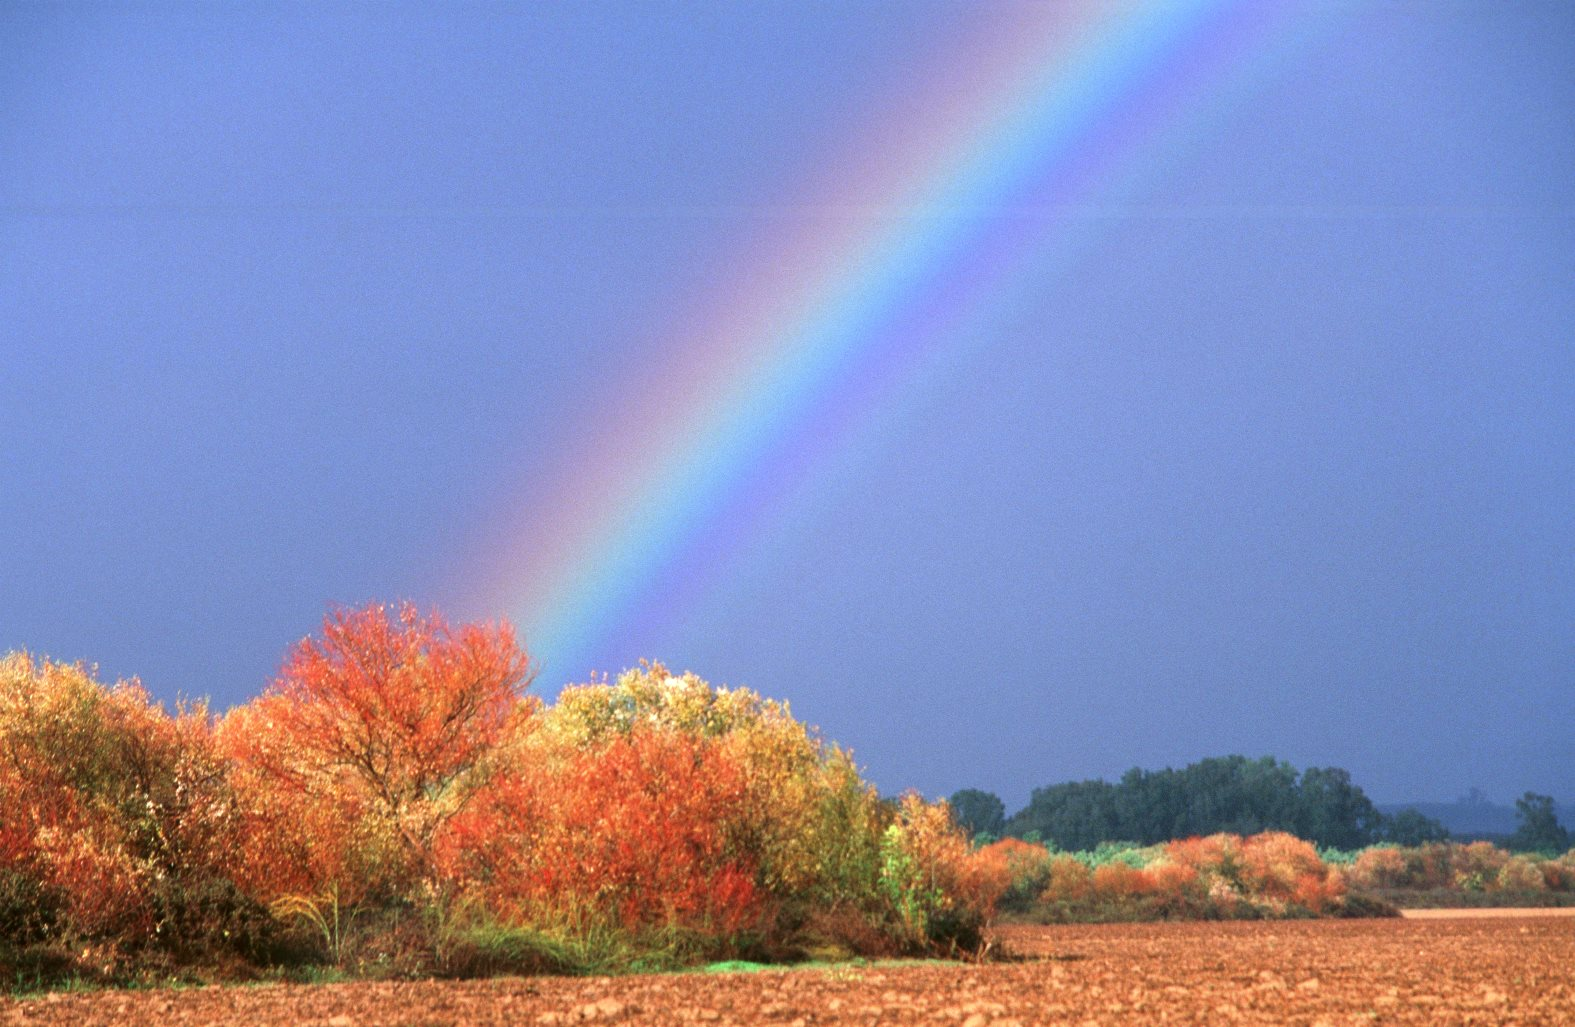 israel rainbows rainbow nature autumn spectacular trees there flood were behind tel dan before doron horowitz flash90 reserve stands northern